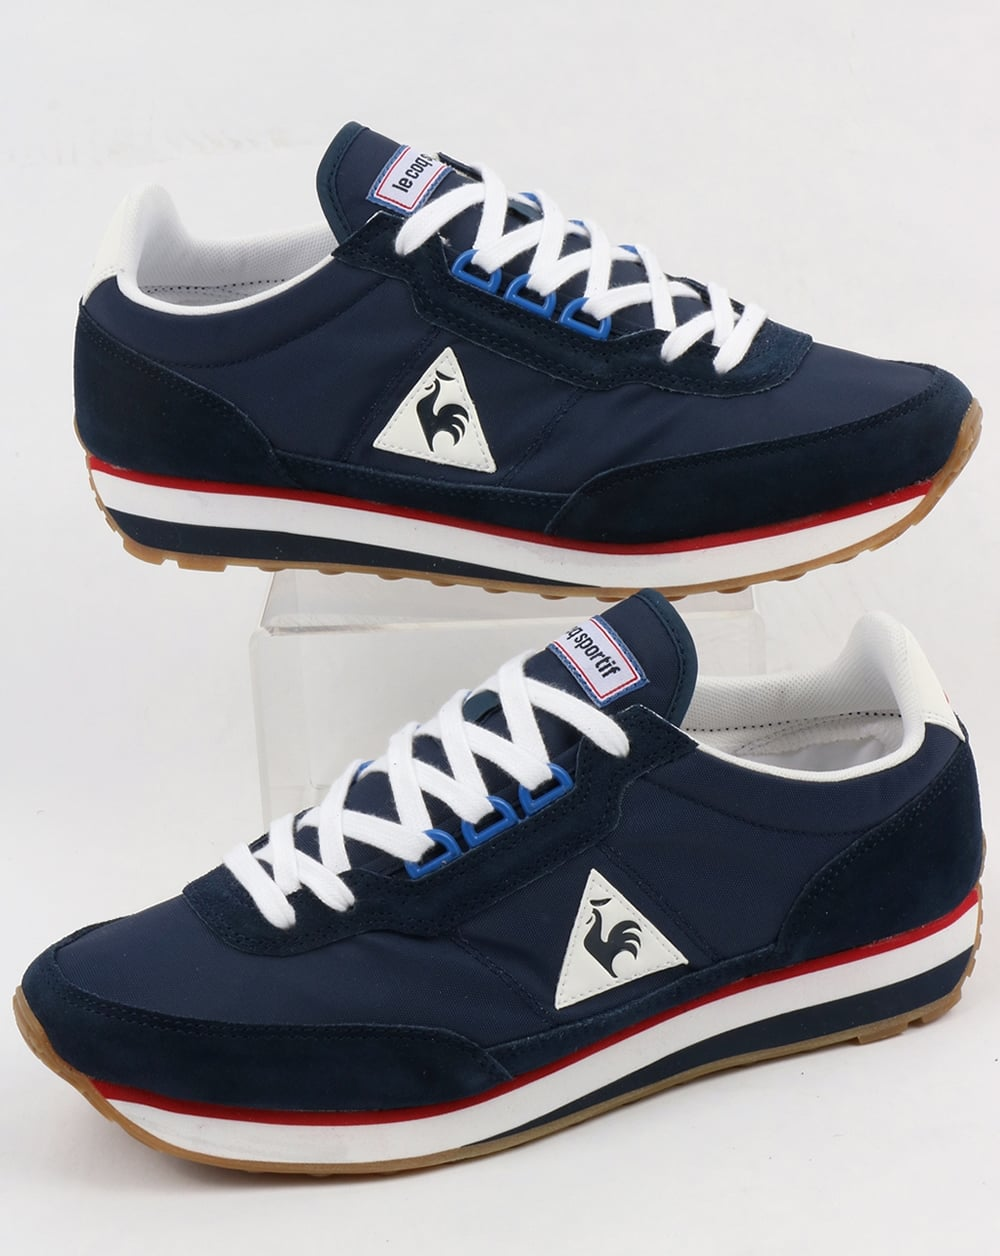 the best attitude 37787 a5ccd Le Coq Sportif Azstyle Trainers Navy Red